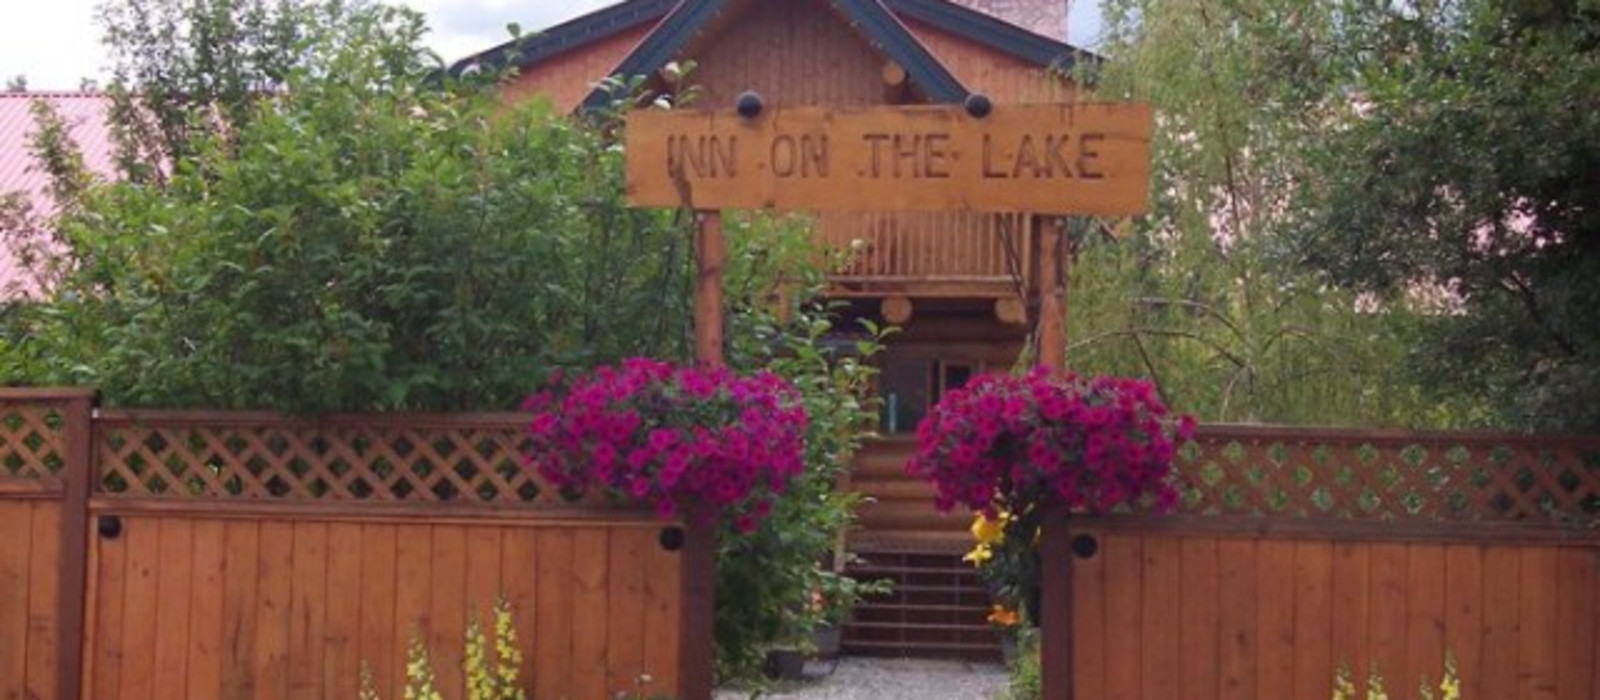 Hotel Inn on the Lake %region%